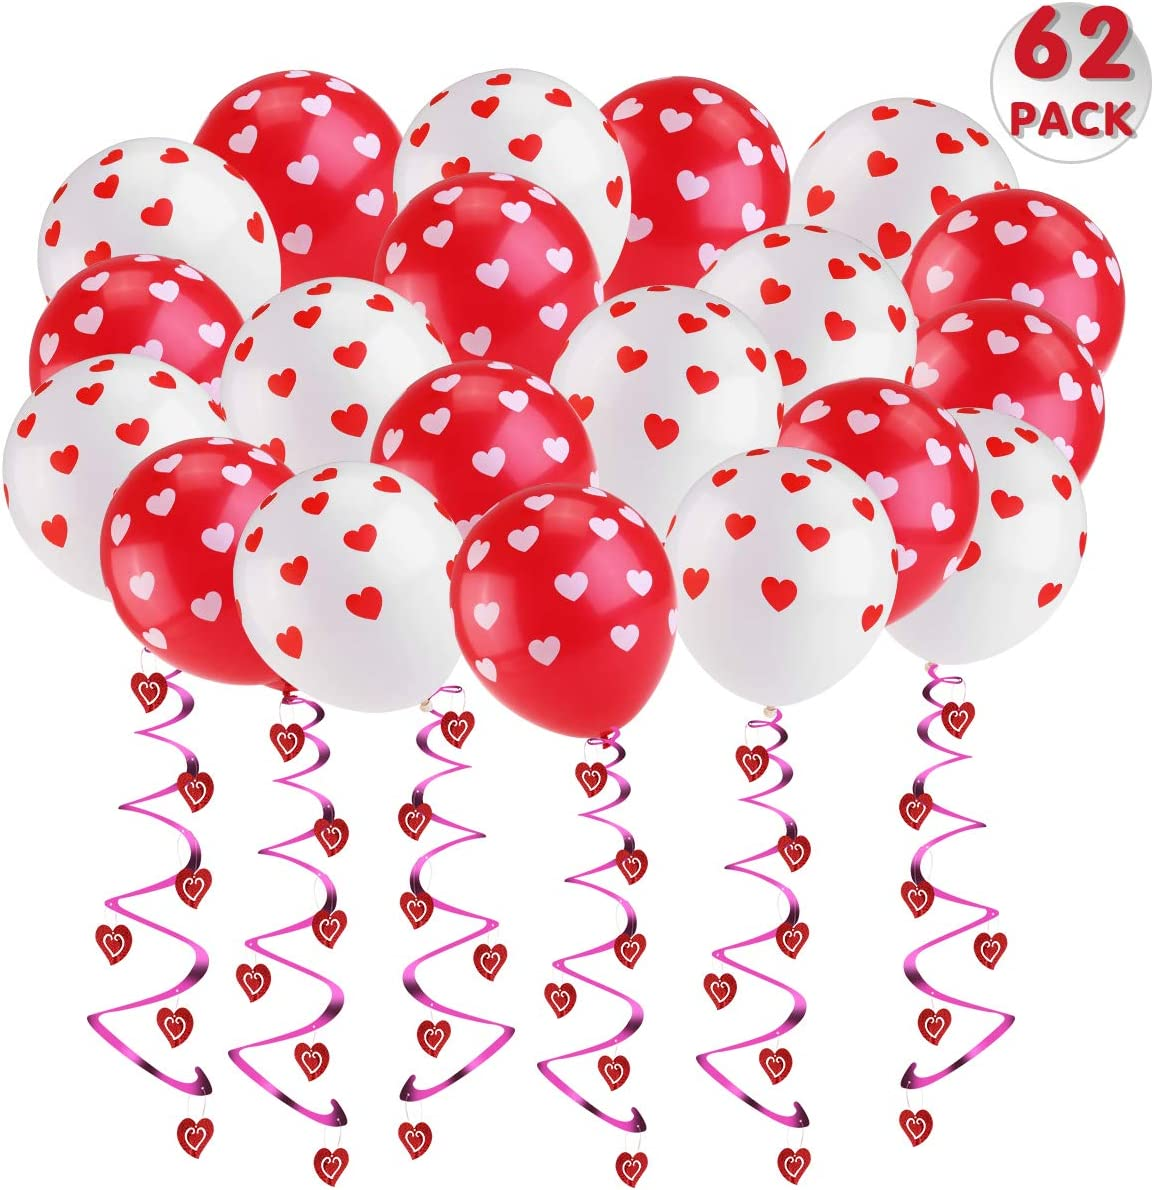 Heart Balloons Heart Shape Decorations Love Balloons White /& Red Valentines Decorations Gift Idea for Him or Her Unomor Party Decorations Wedding Girl Baby Shower Birthday Decorations